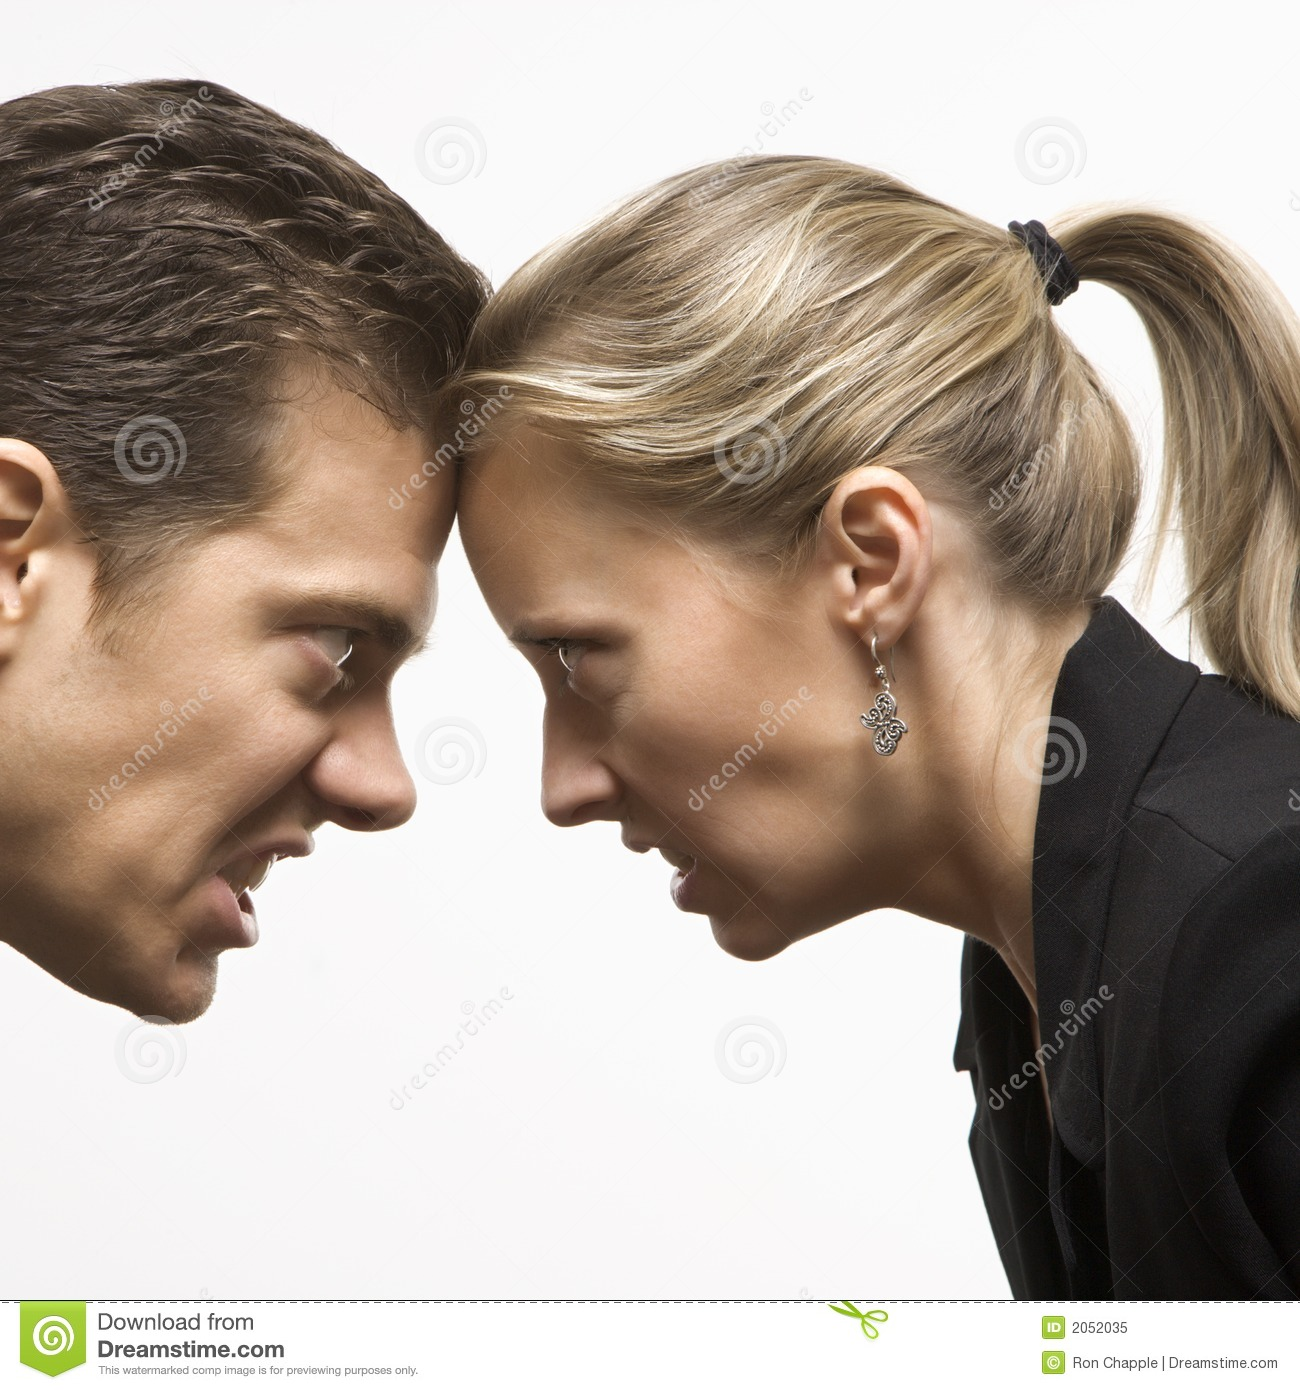 Angry Man And Woman Royalty Free Stock Photo - Image: 2052035